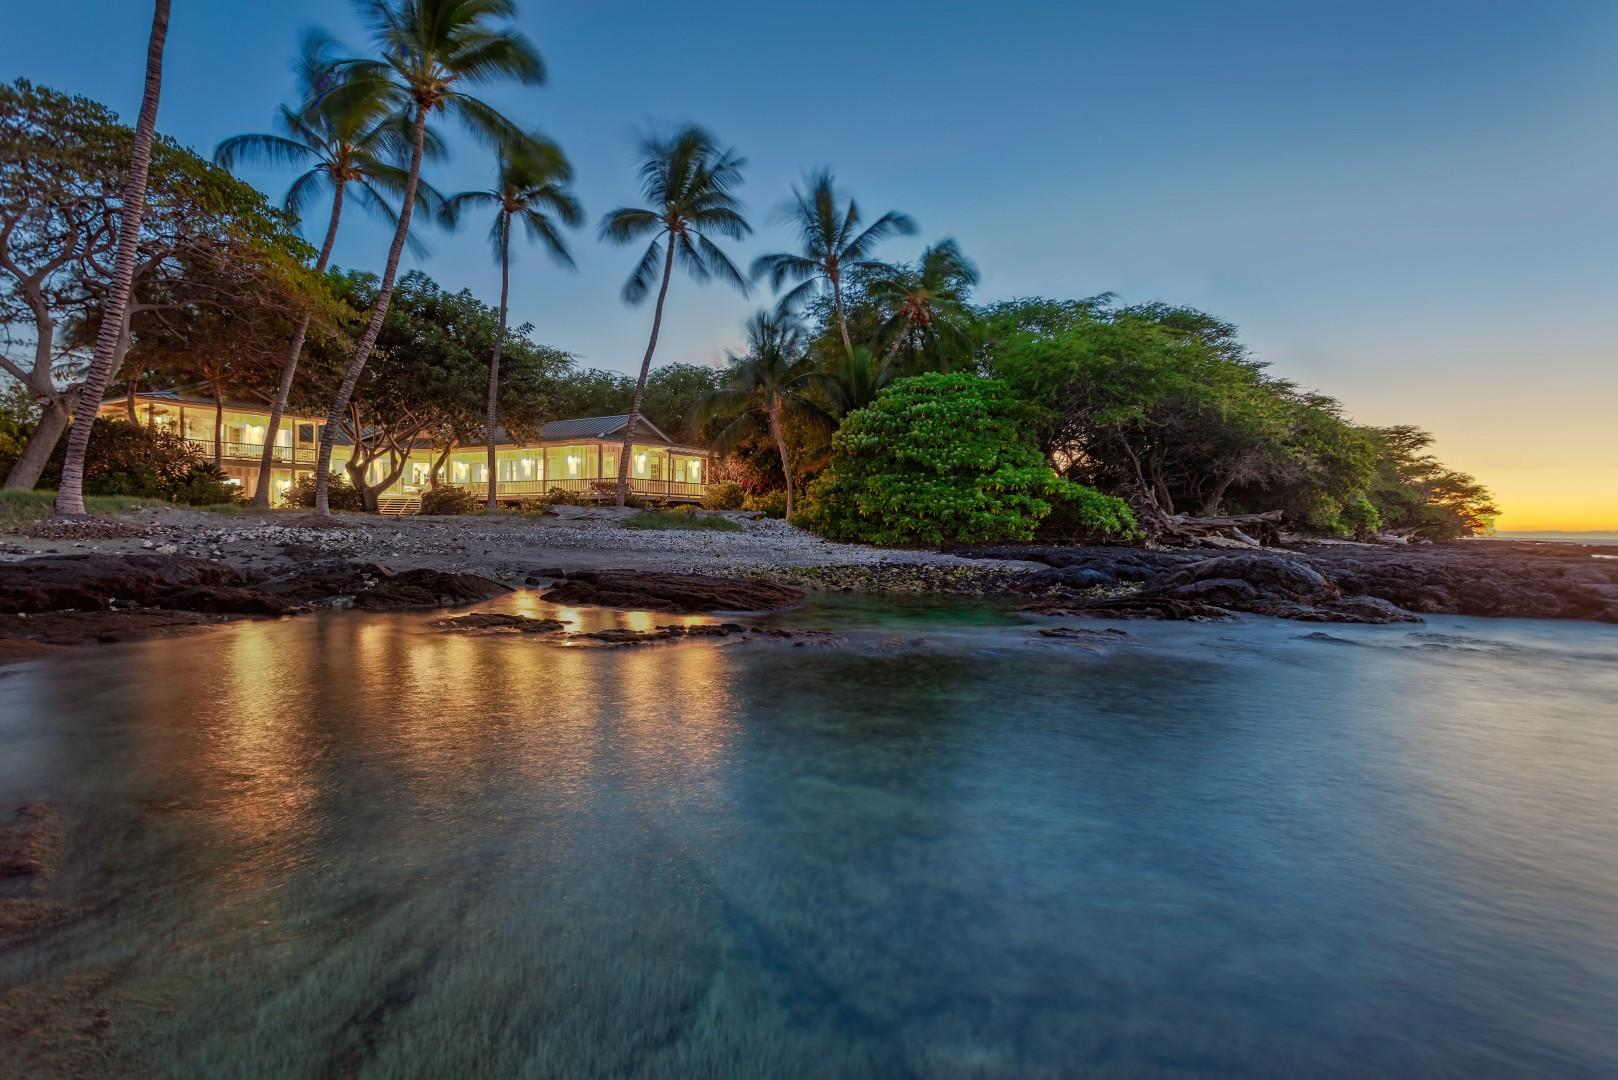 Sunset View of the Outstanding Ocean Front Property from Beautiful Puako Bay